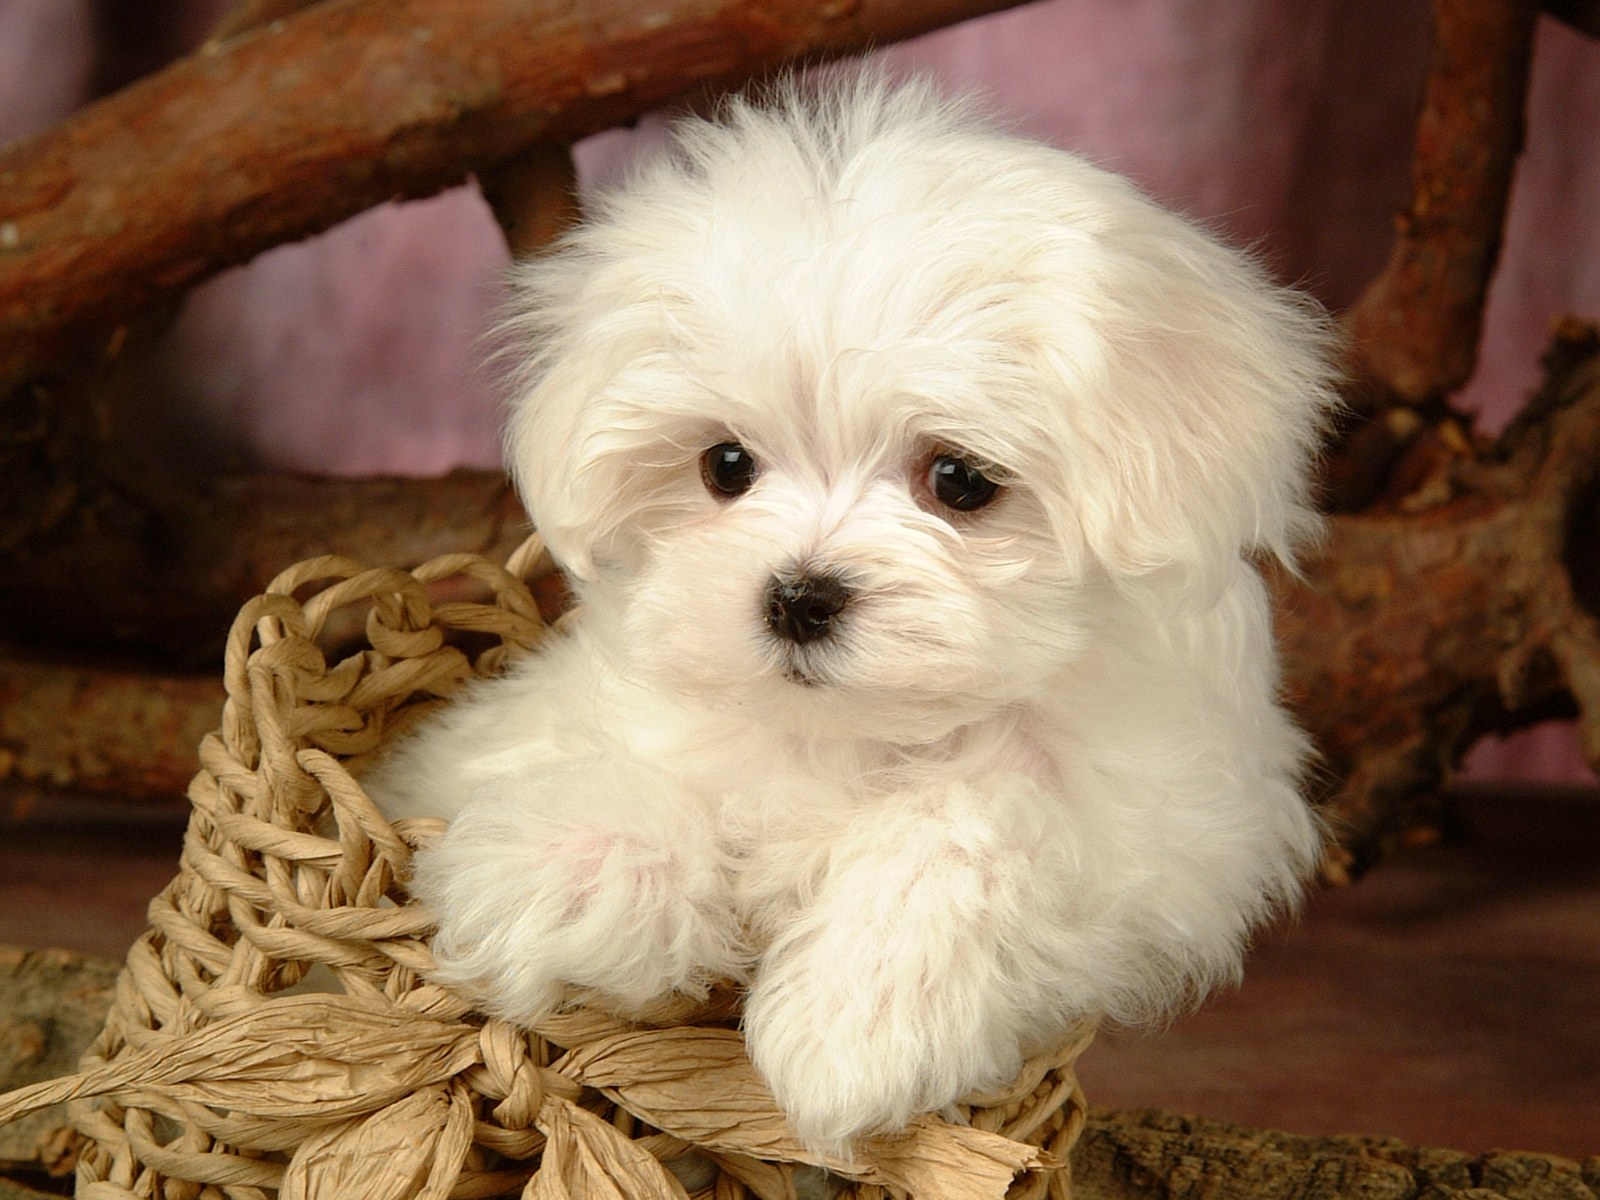 wallpapers hd puppy wallpapers hd puppy wallpapers hd puppy wallpapers 1600x1200